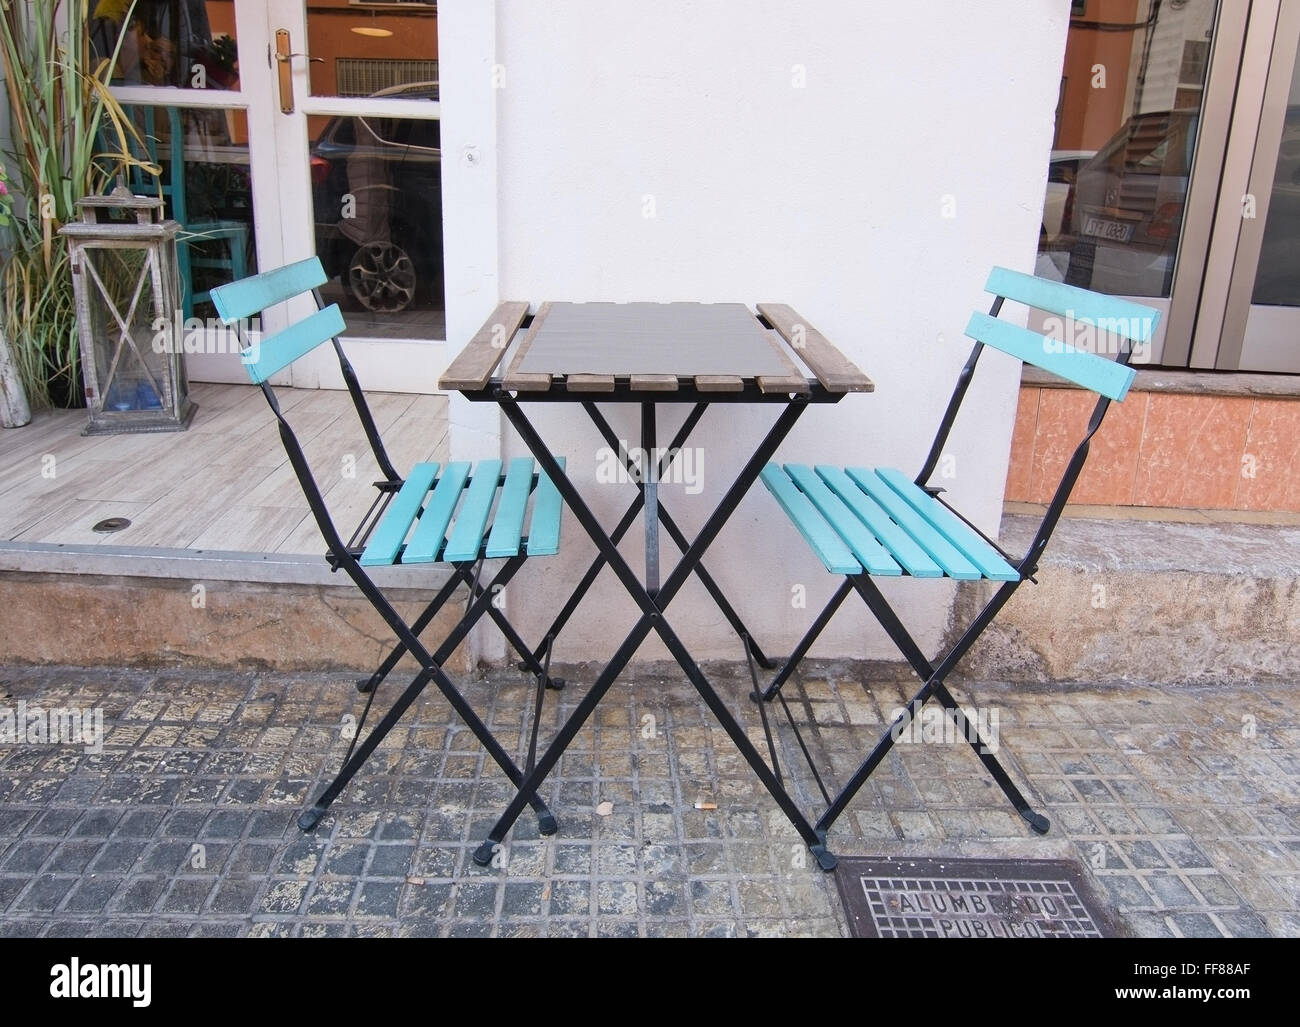 Two Authentic Turquoise Wood And Metal Chairs And Simple Table Outside  Small Restaurant On December 19, 2015 In Palma, Spain